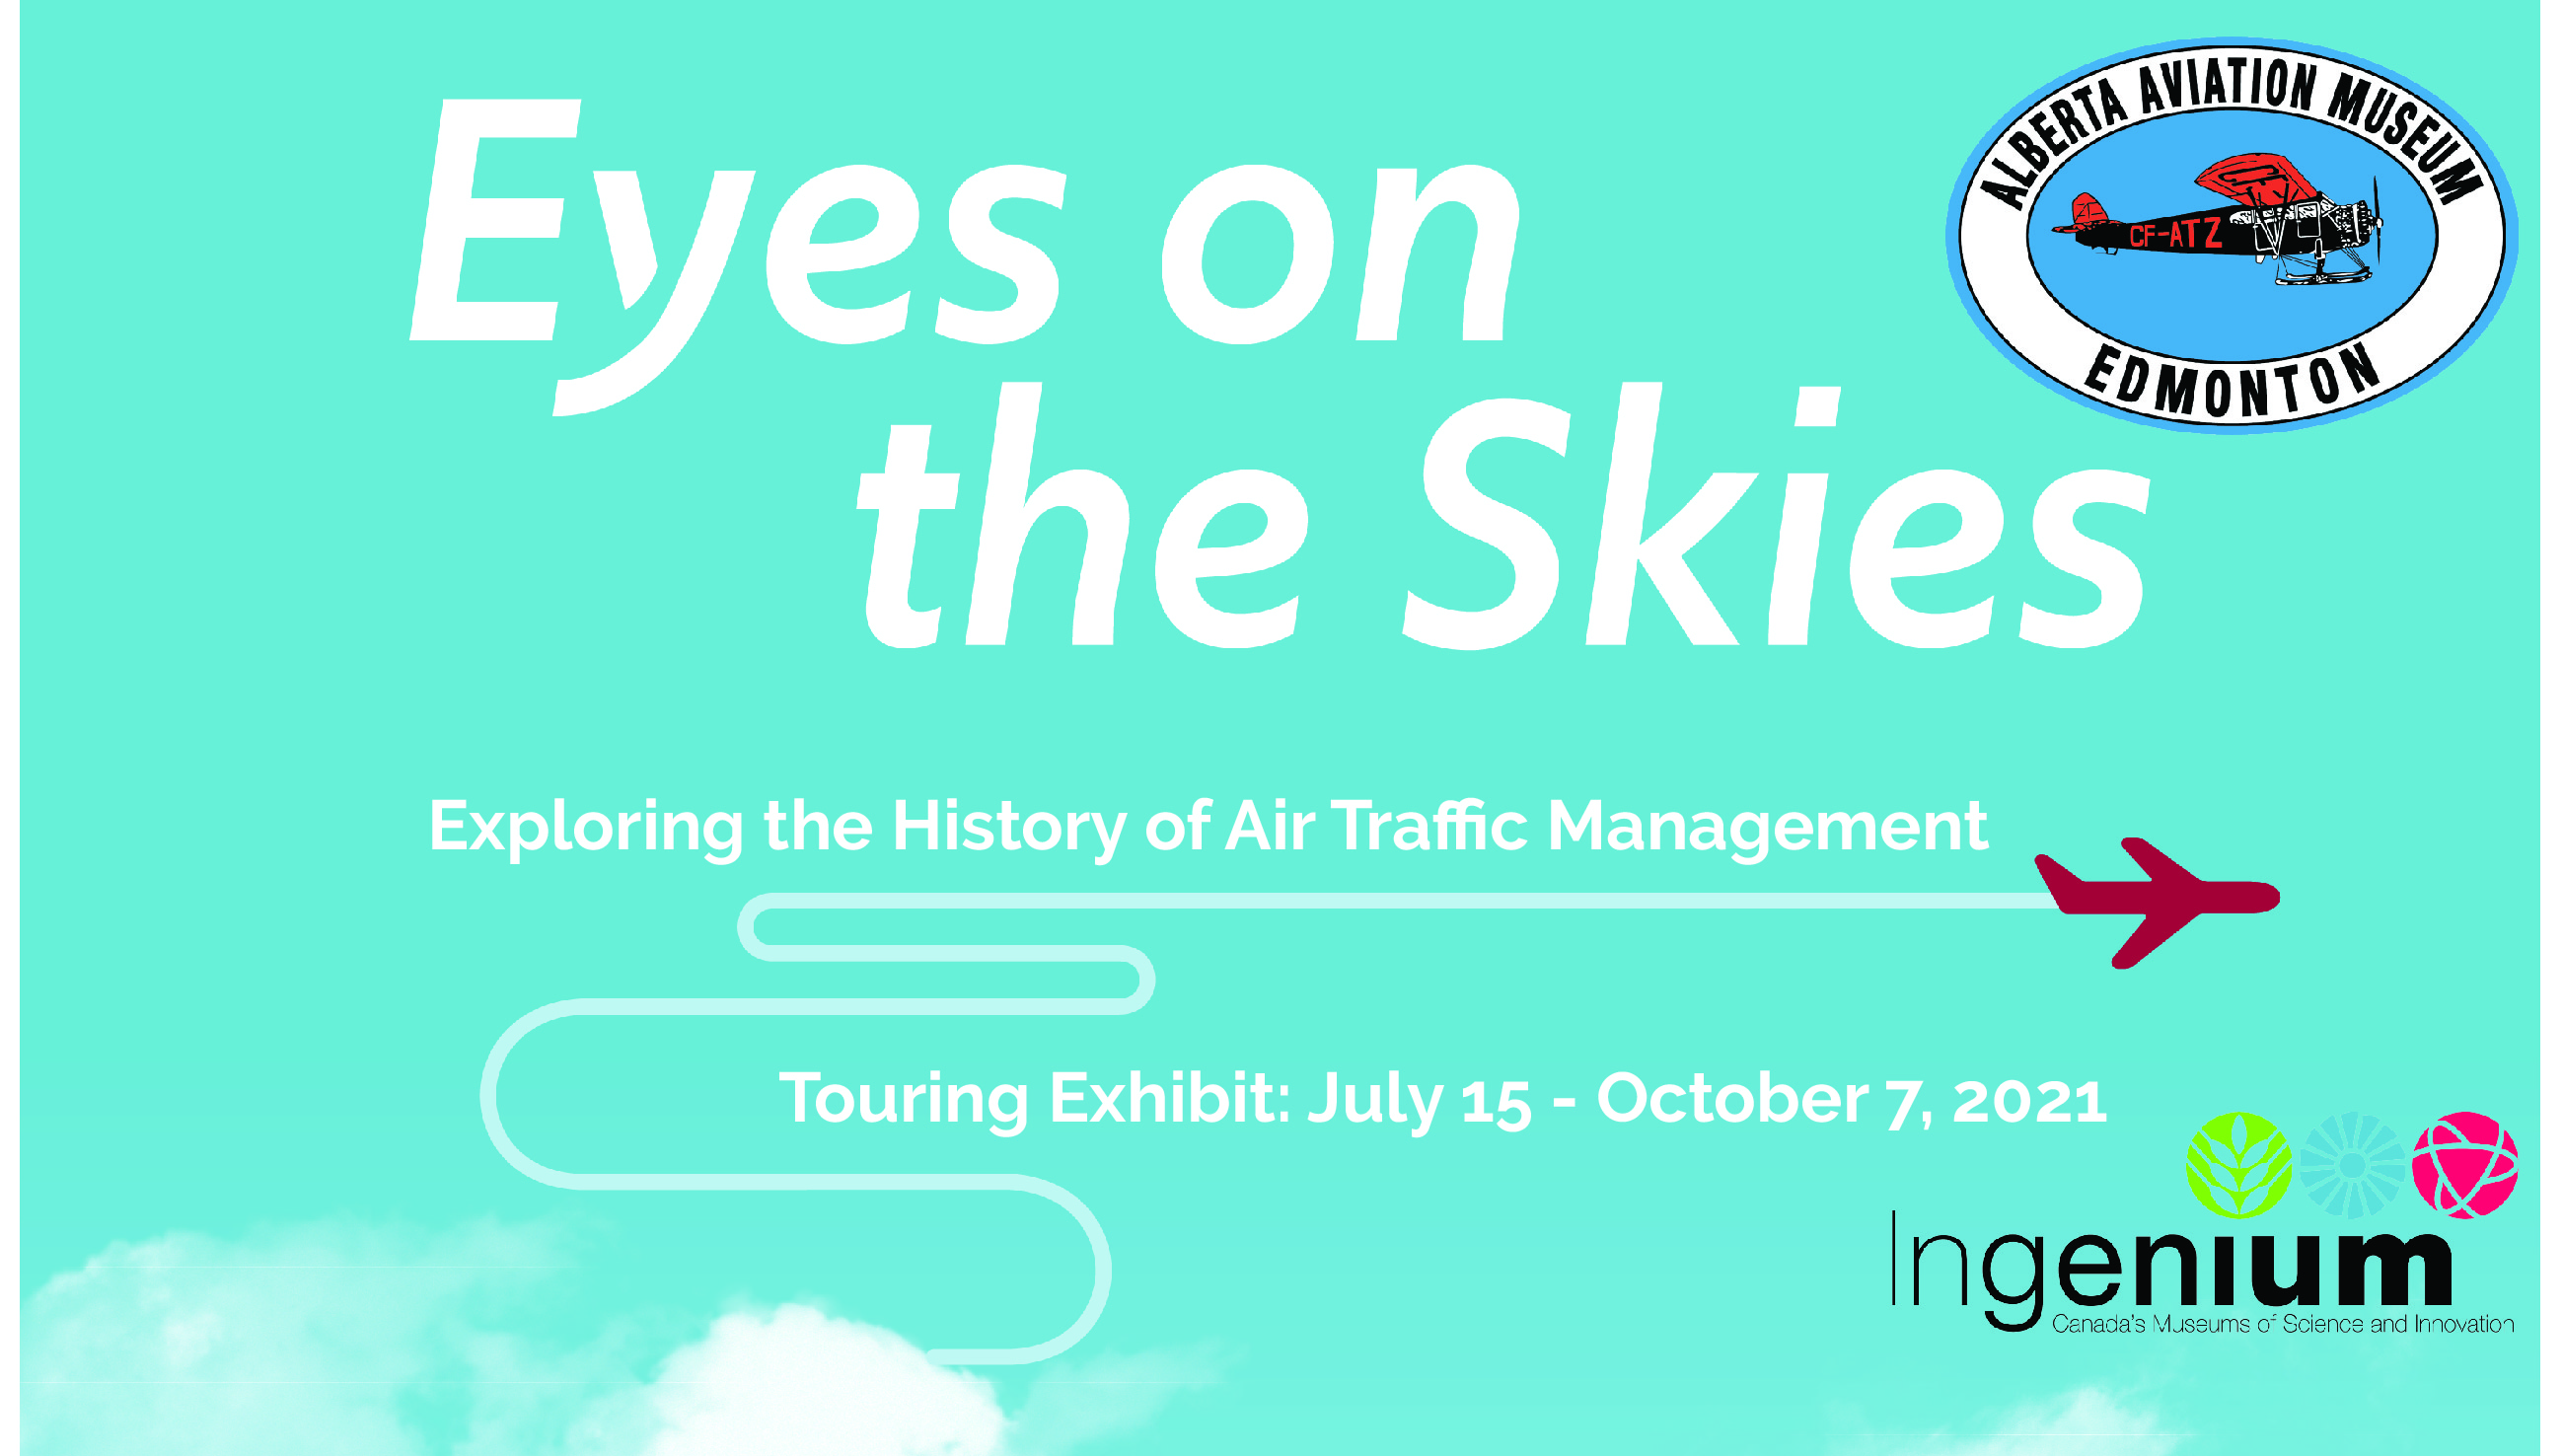 Eyes on the Skies Exhibit at the Alberta Aviation Museum